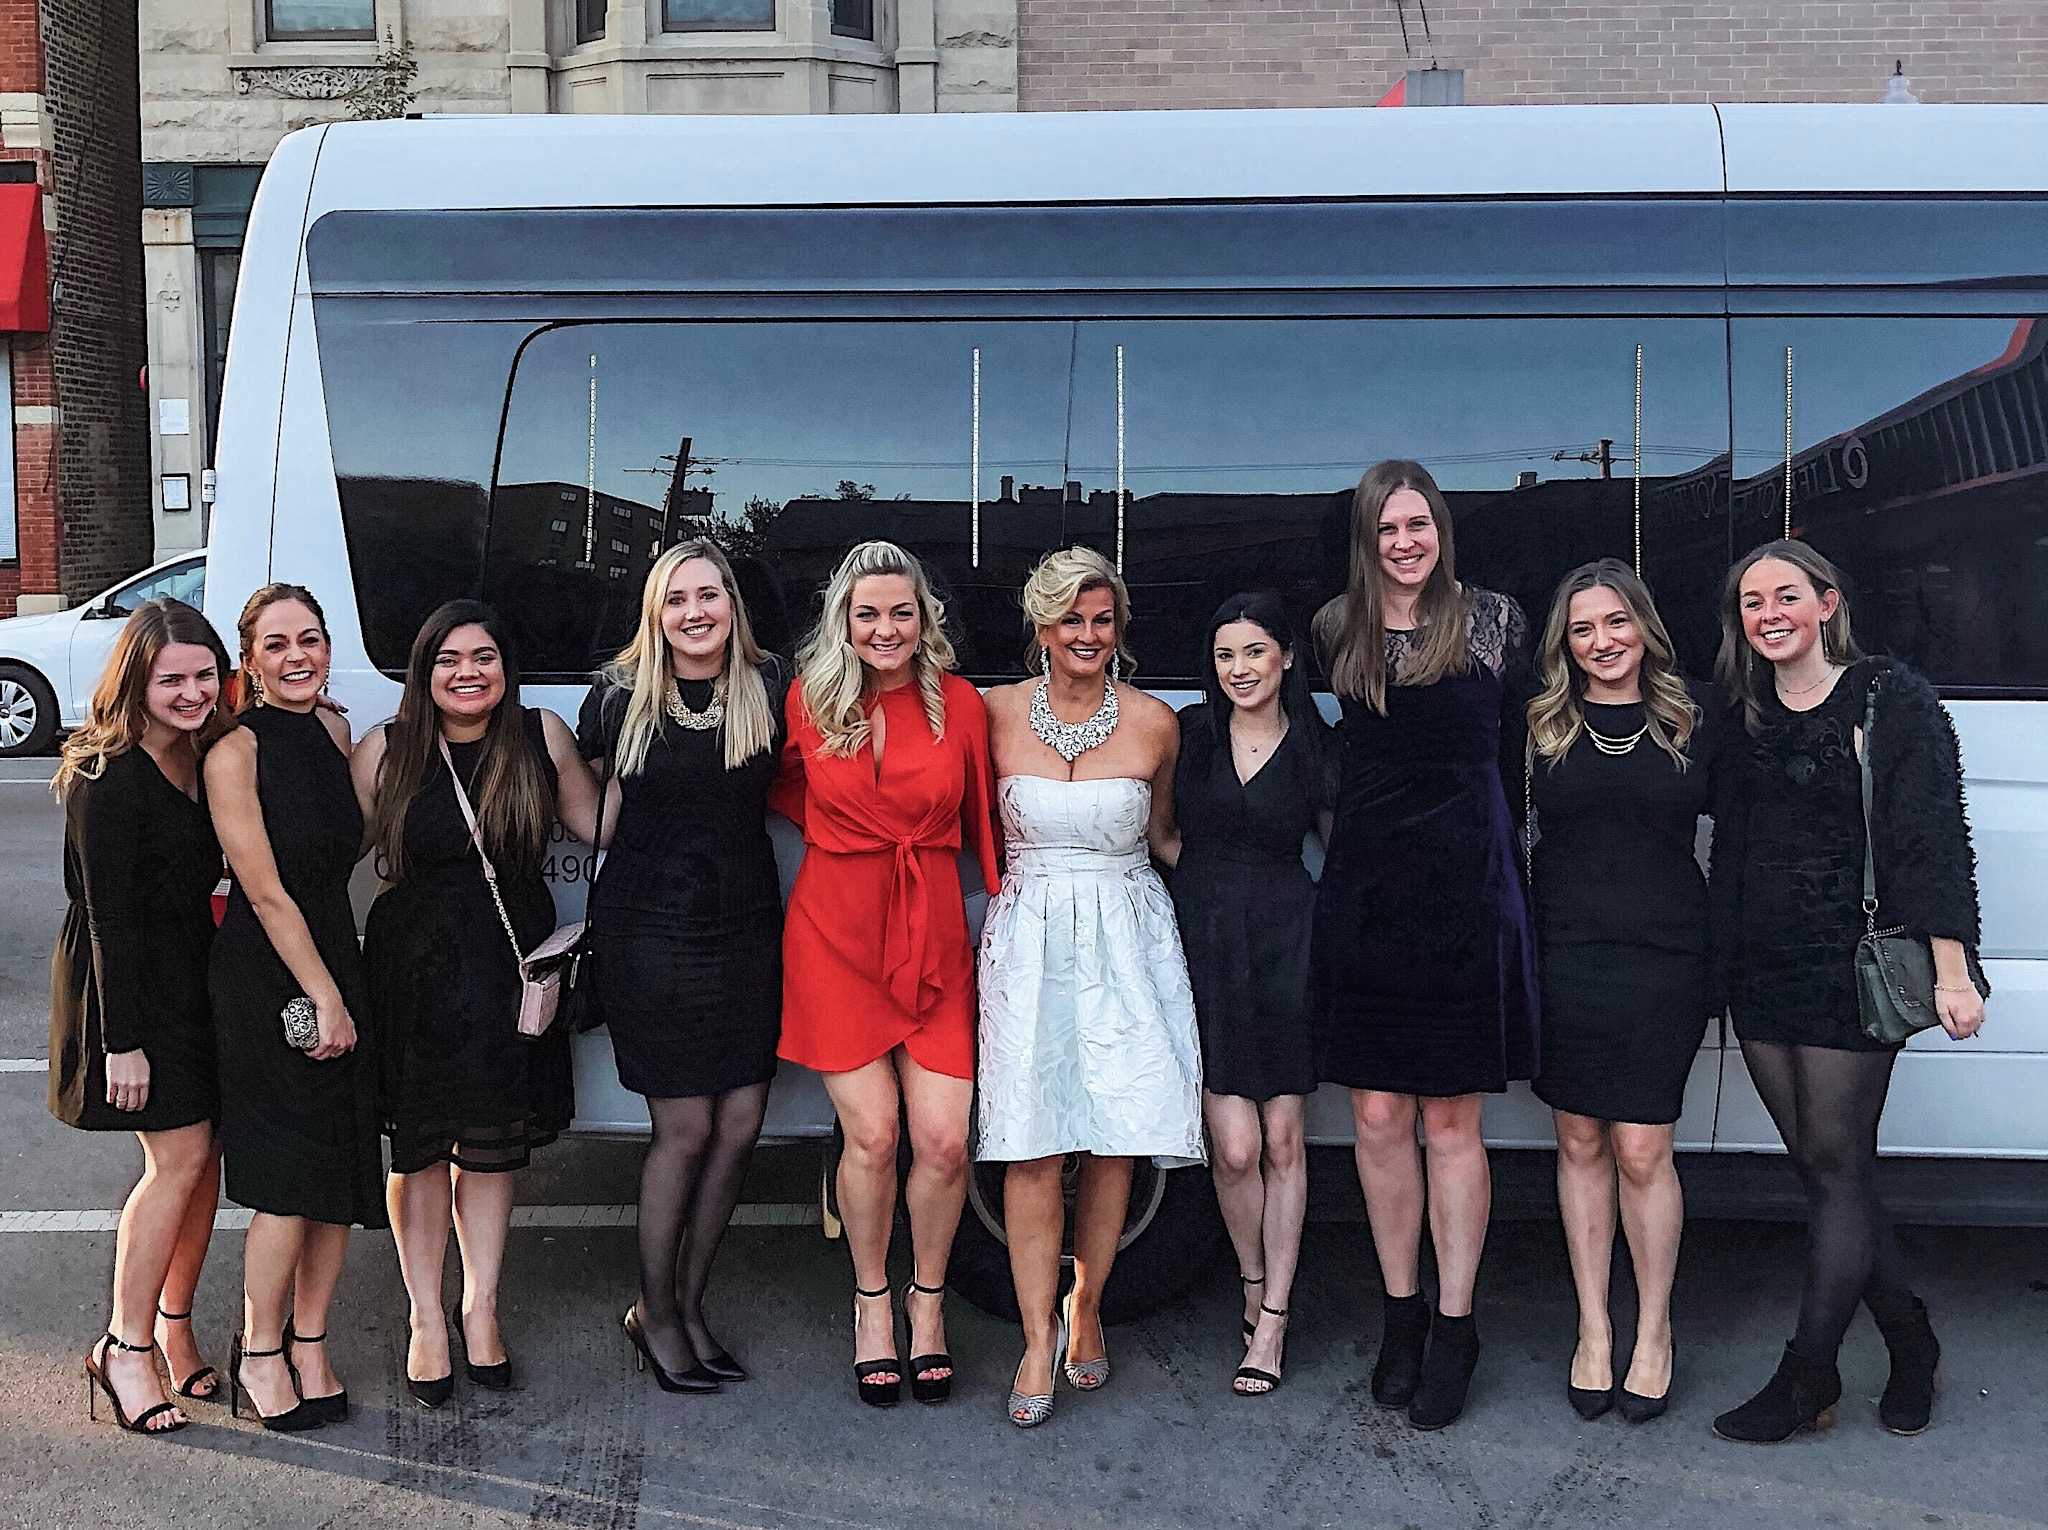 Women standing in front of a bus